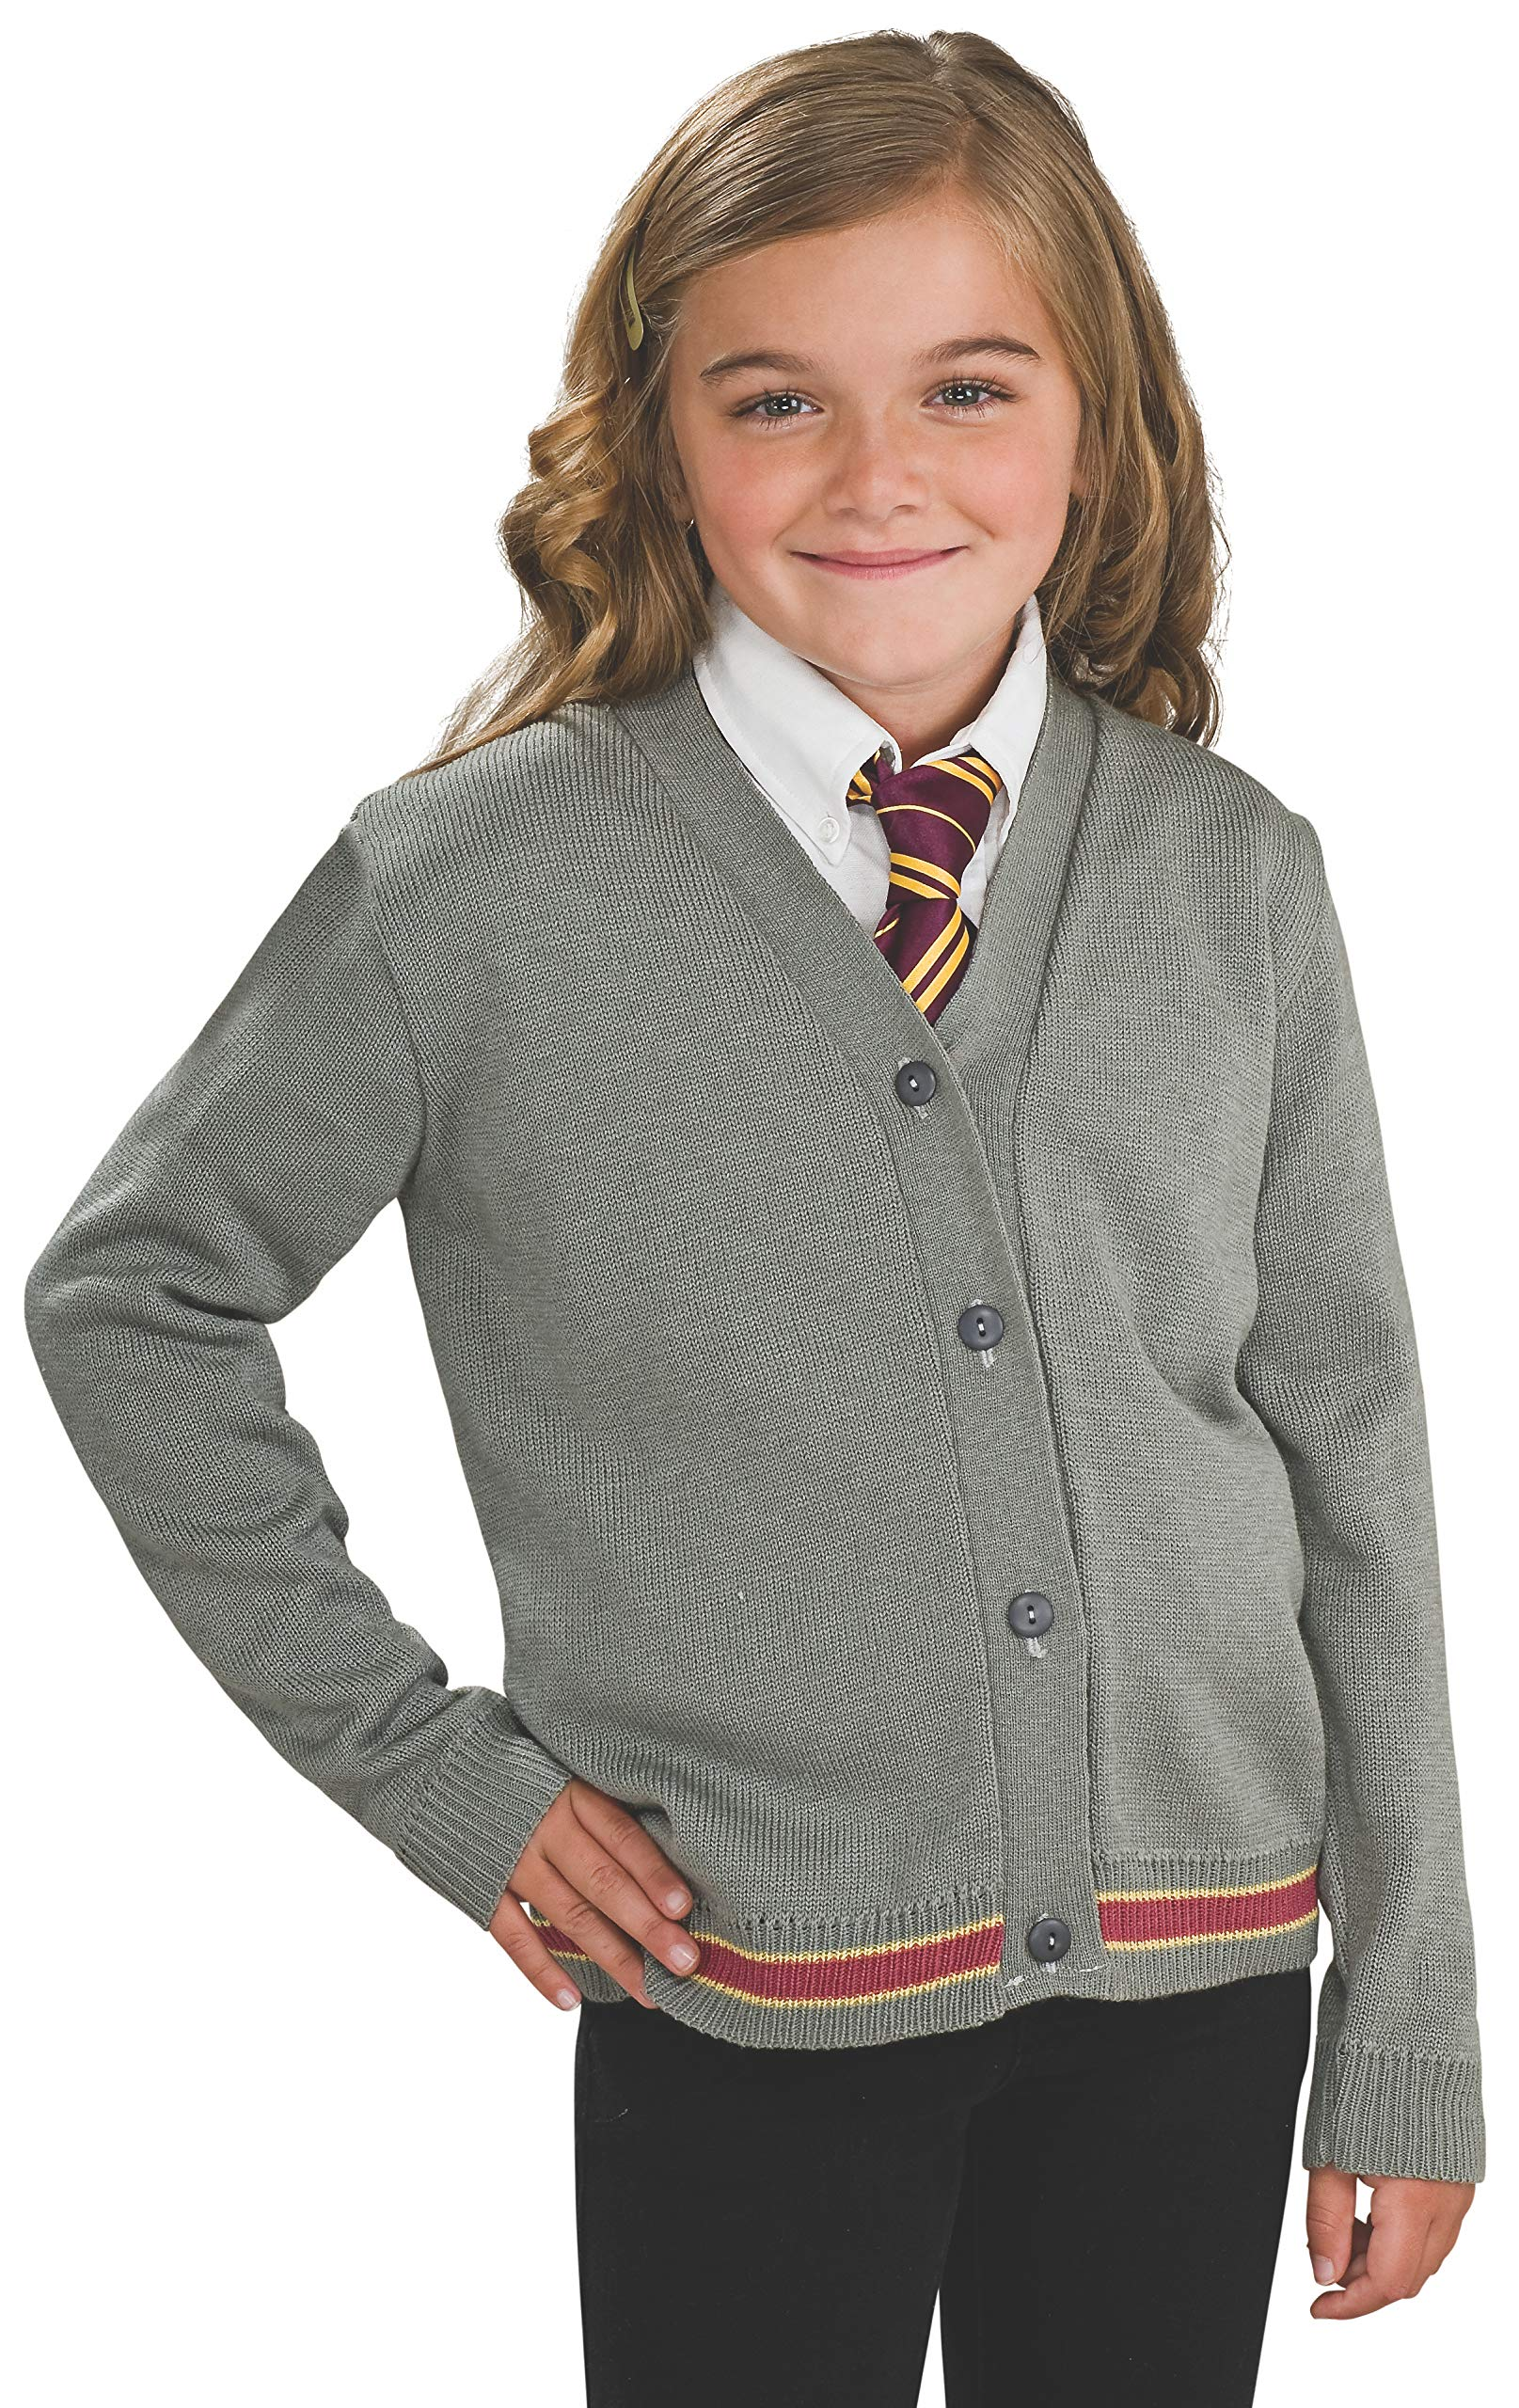 Harry Potter Hermione Granger Hogwarts Cardigan and Tie Costume - Medium by Rubie's